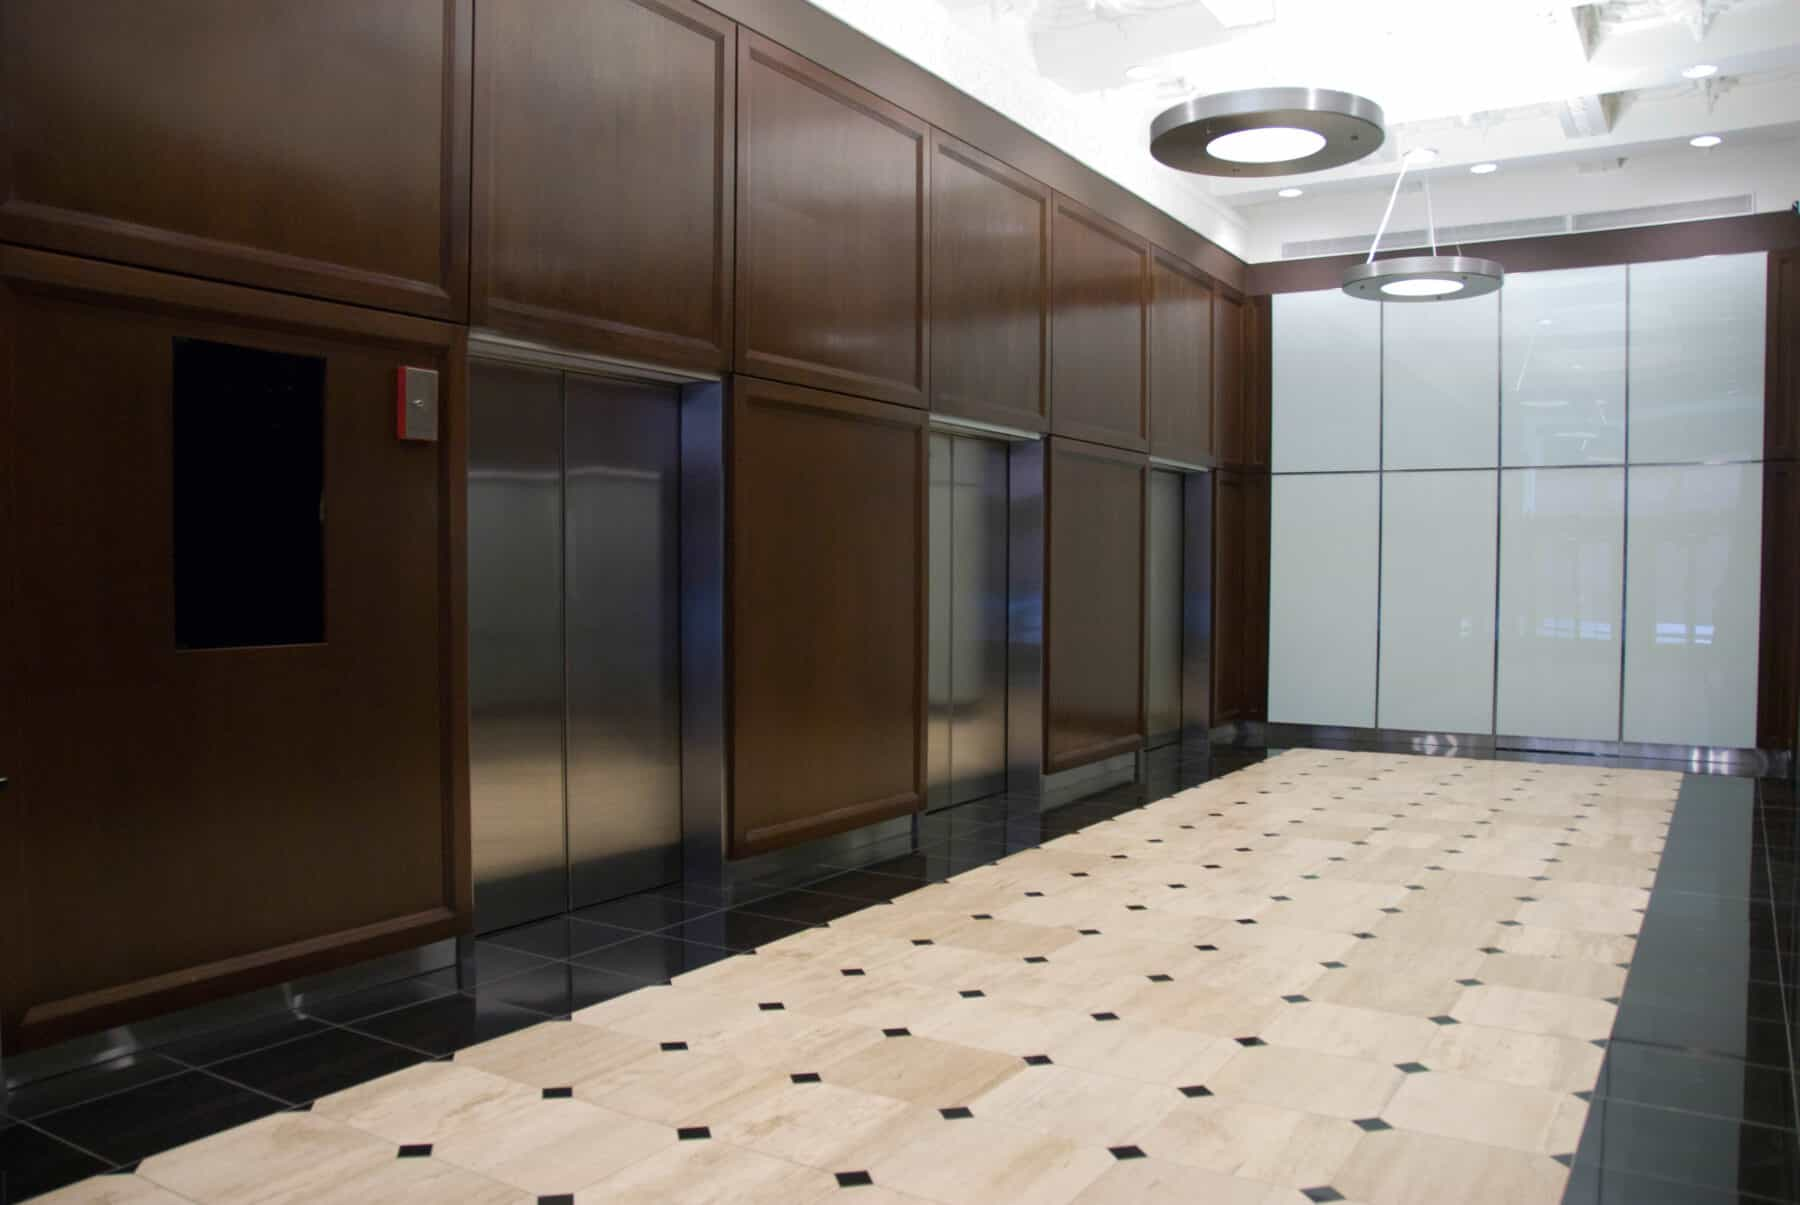 Beautiful Glass Walls and Wood Panels for Adams Street Lobby Remodel by Commercial Builder & General Contractor Structural Enterprises